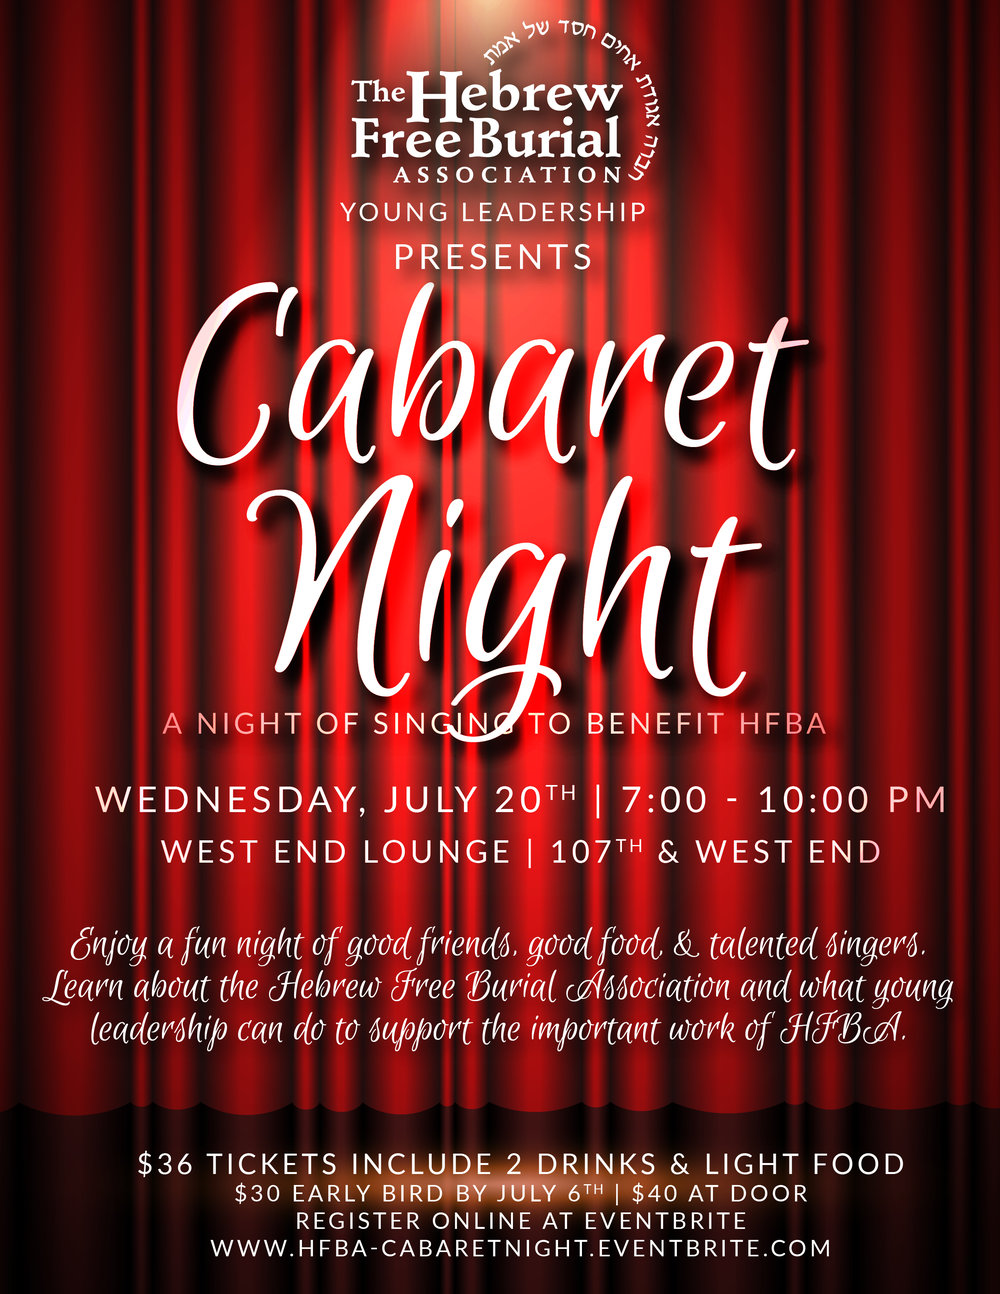 Cabaret Night - Event Poster, Hebrew Free Burial Association